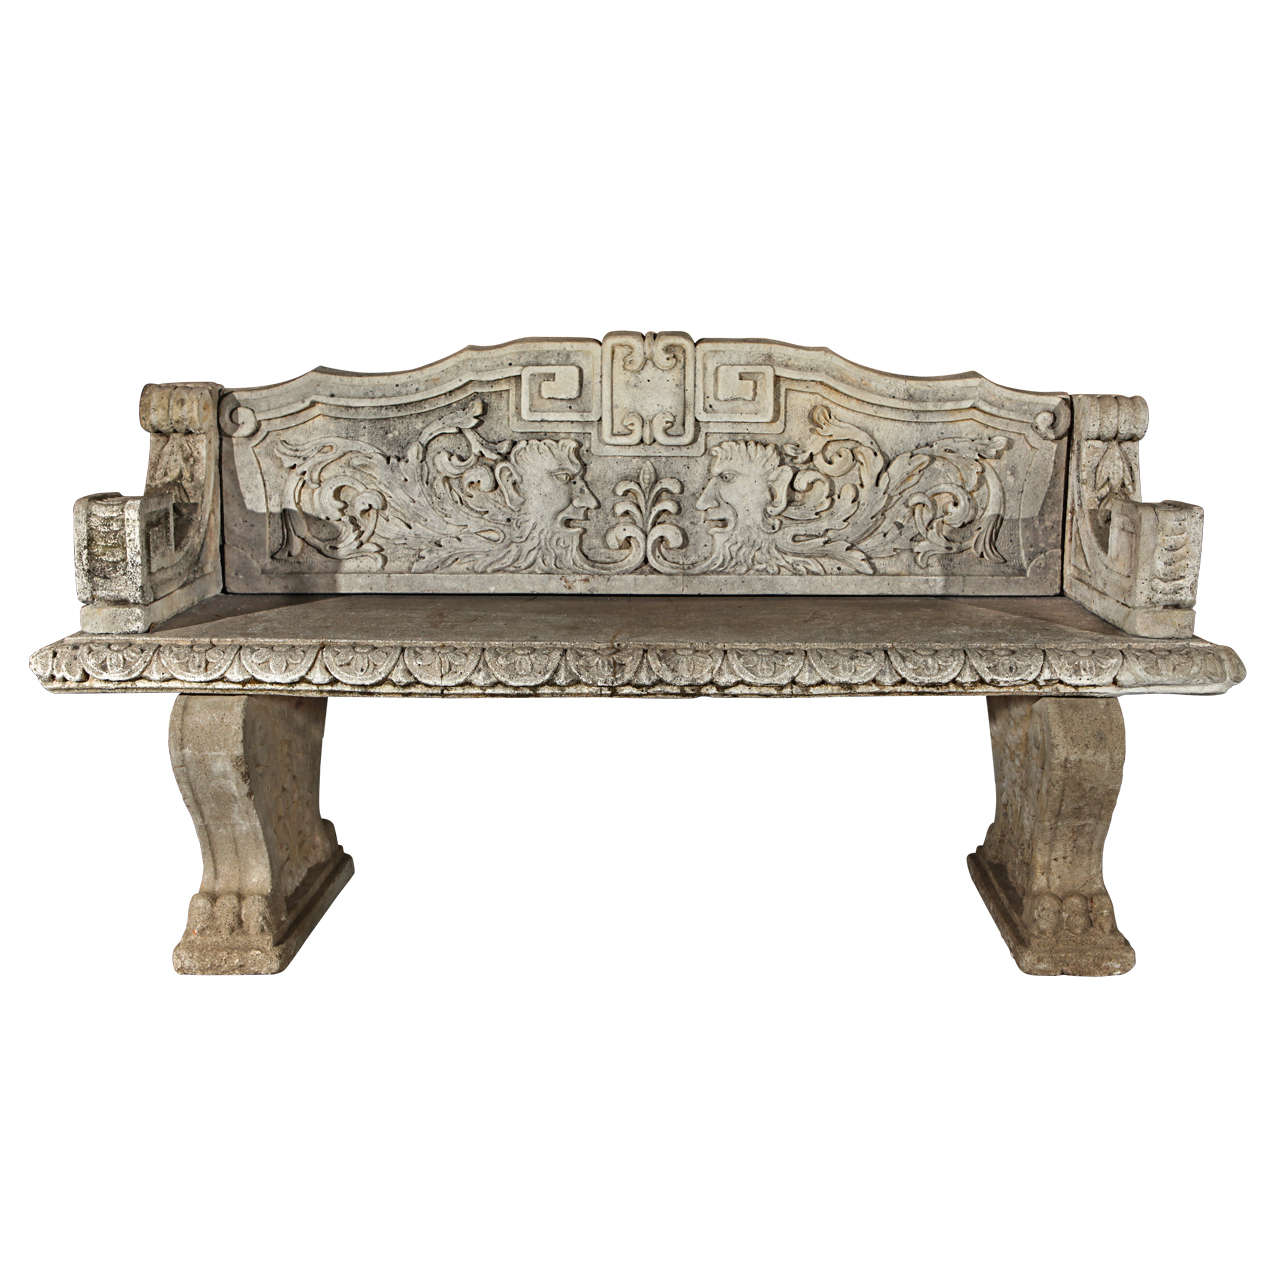 Carved Stone Bench : Carved stone bench at stdibs